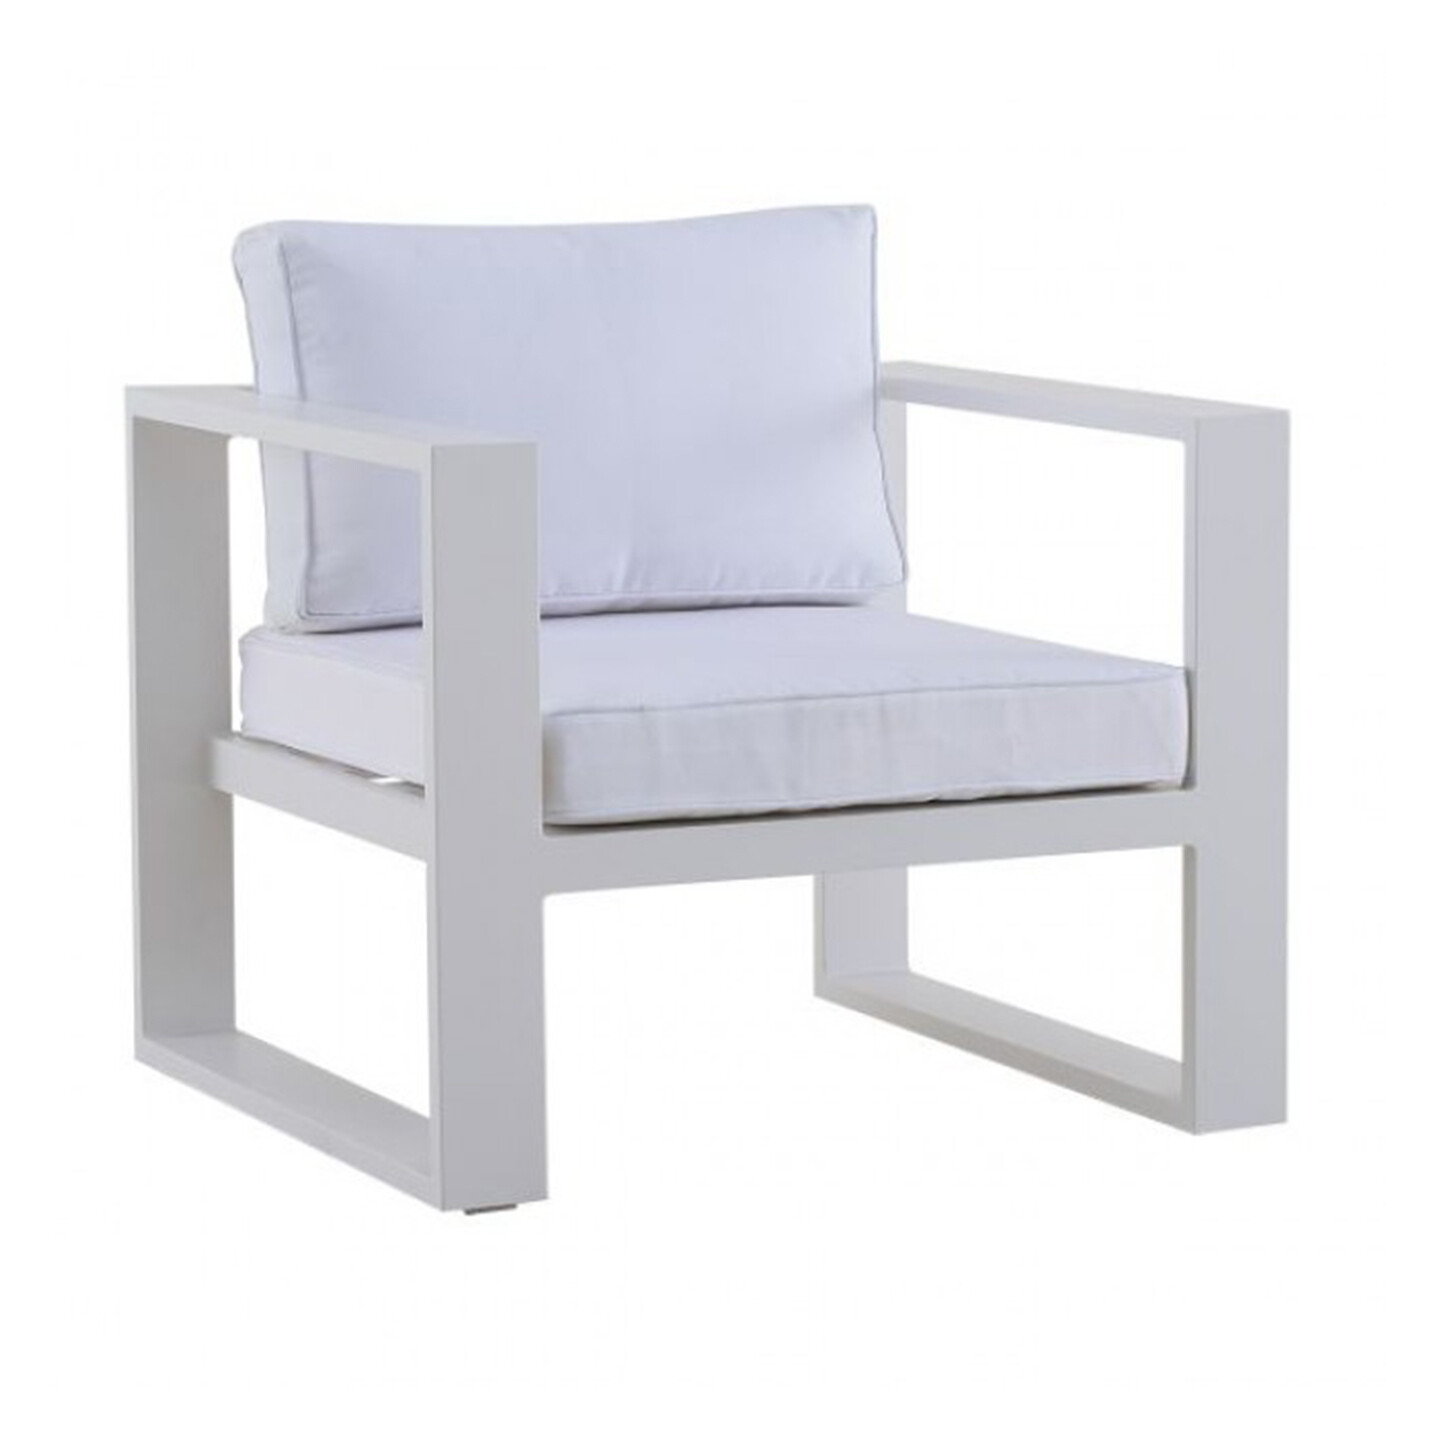 Outdoor Single Chair with Cushions